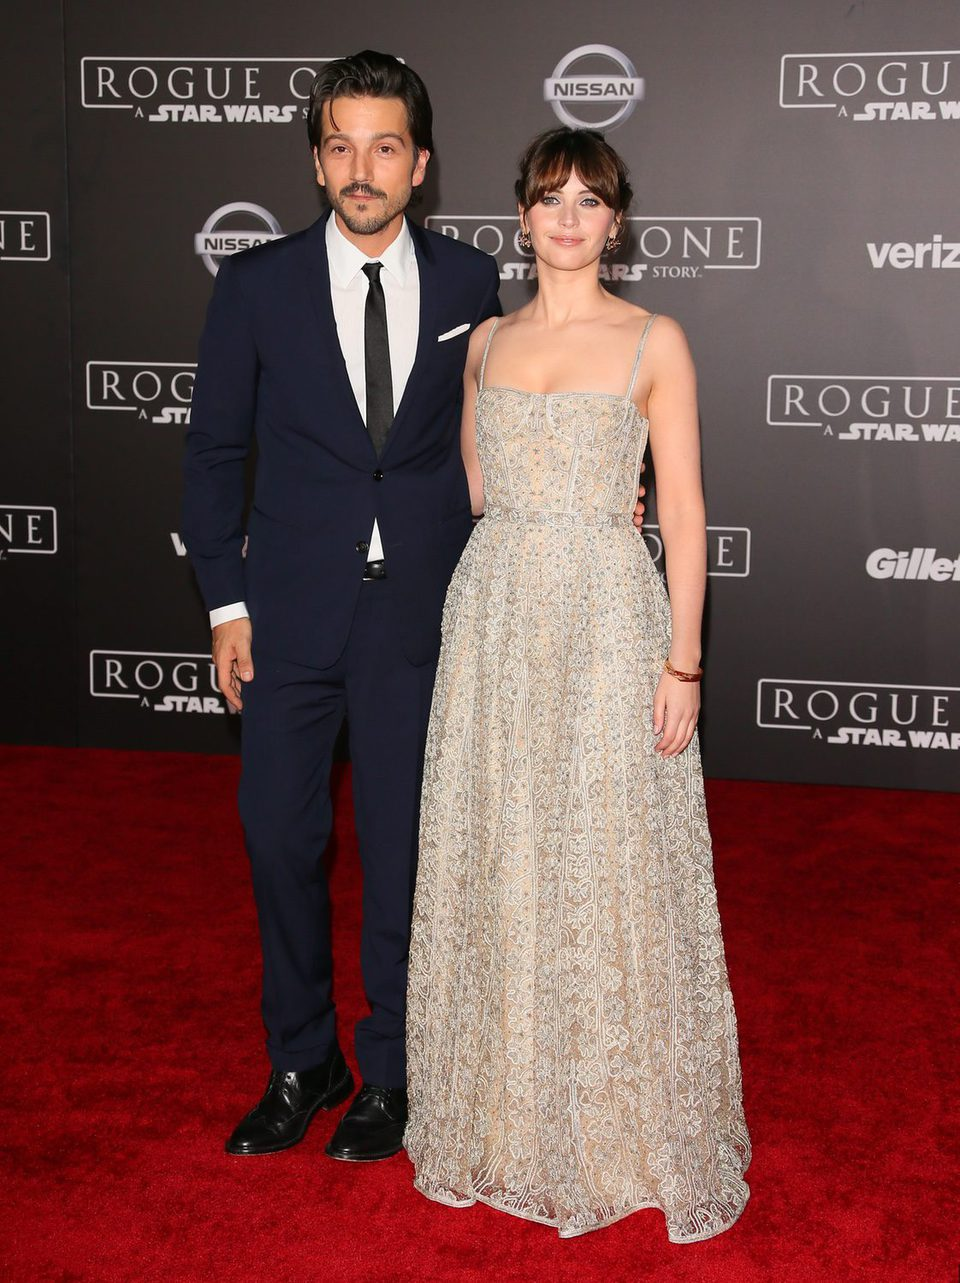 Felicity Jones y Diego Luna, en la premiere de 'Rogue One' en Los Ángeles